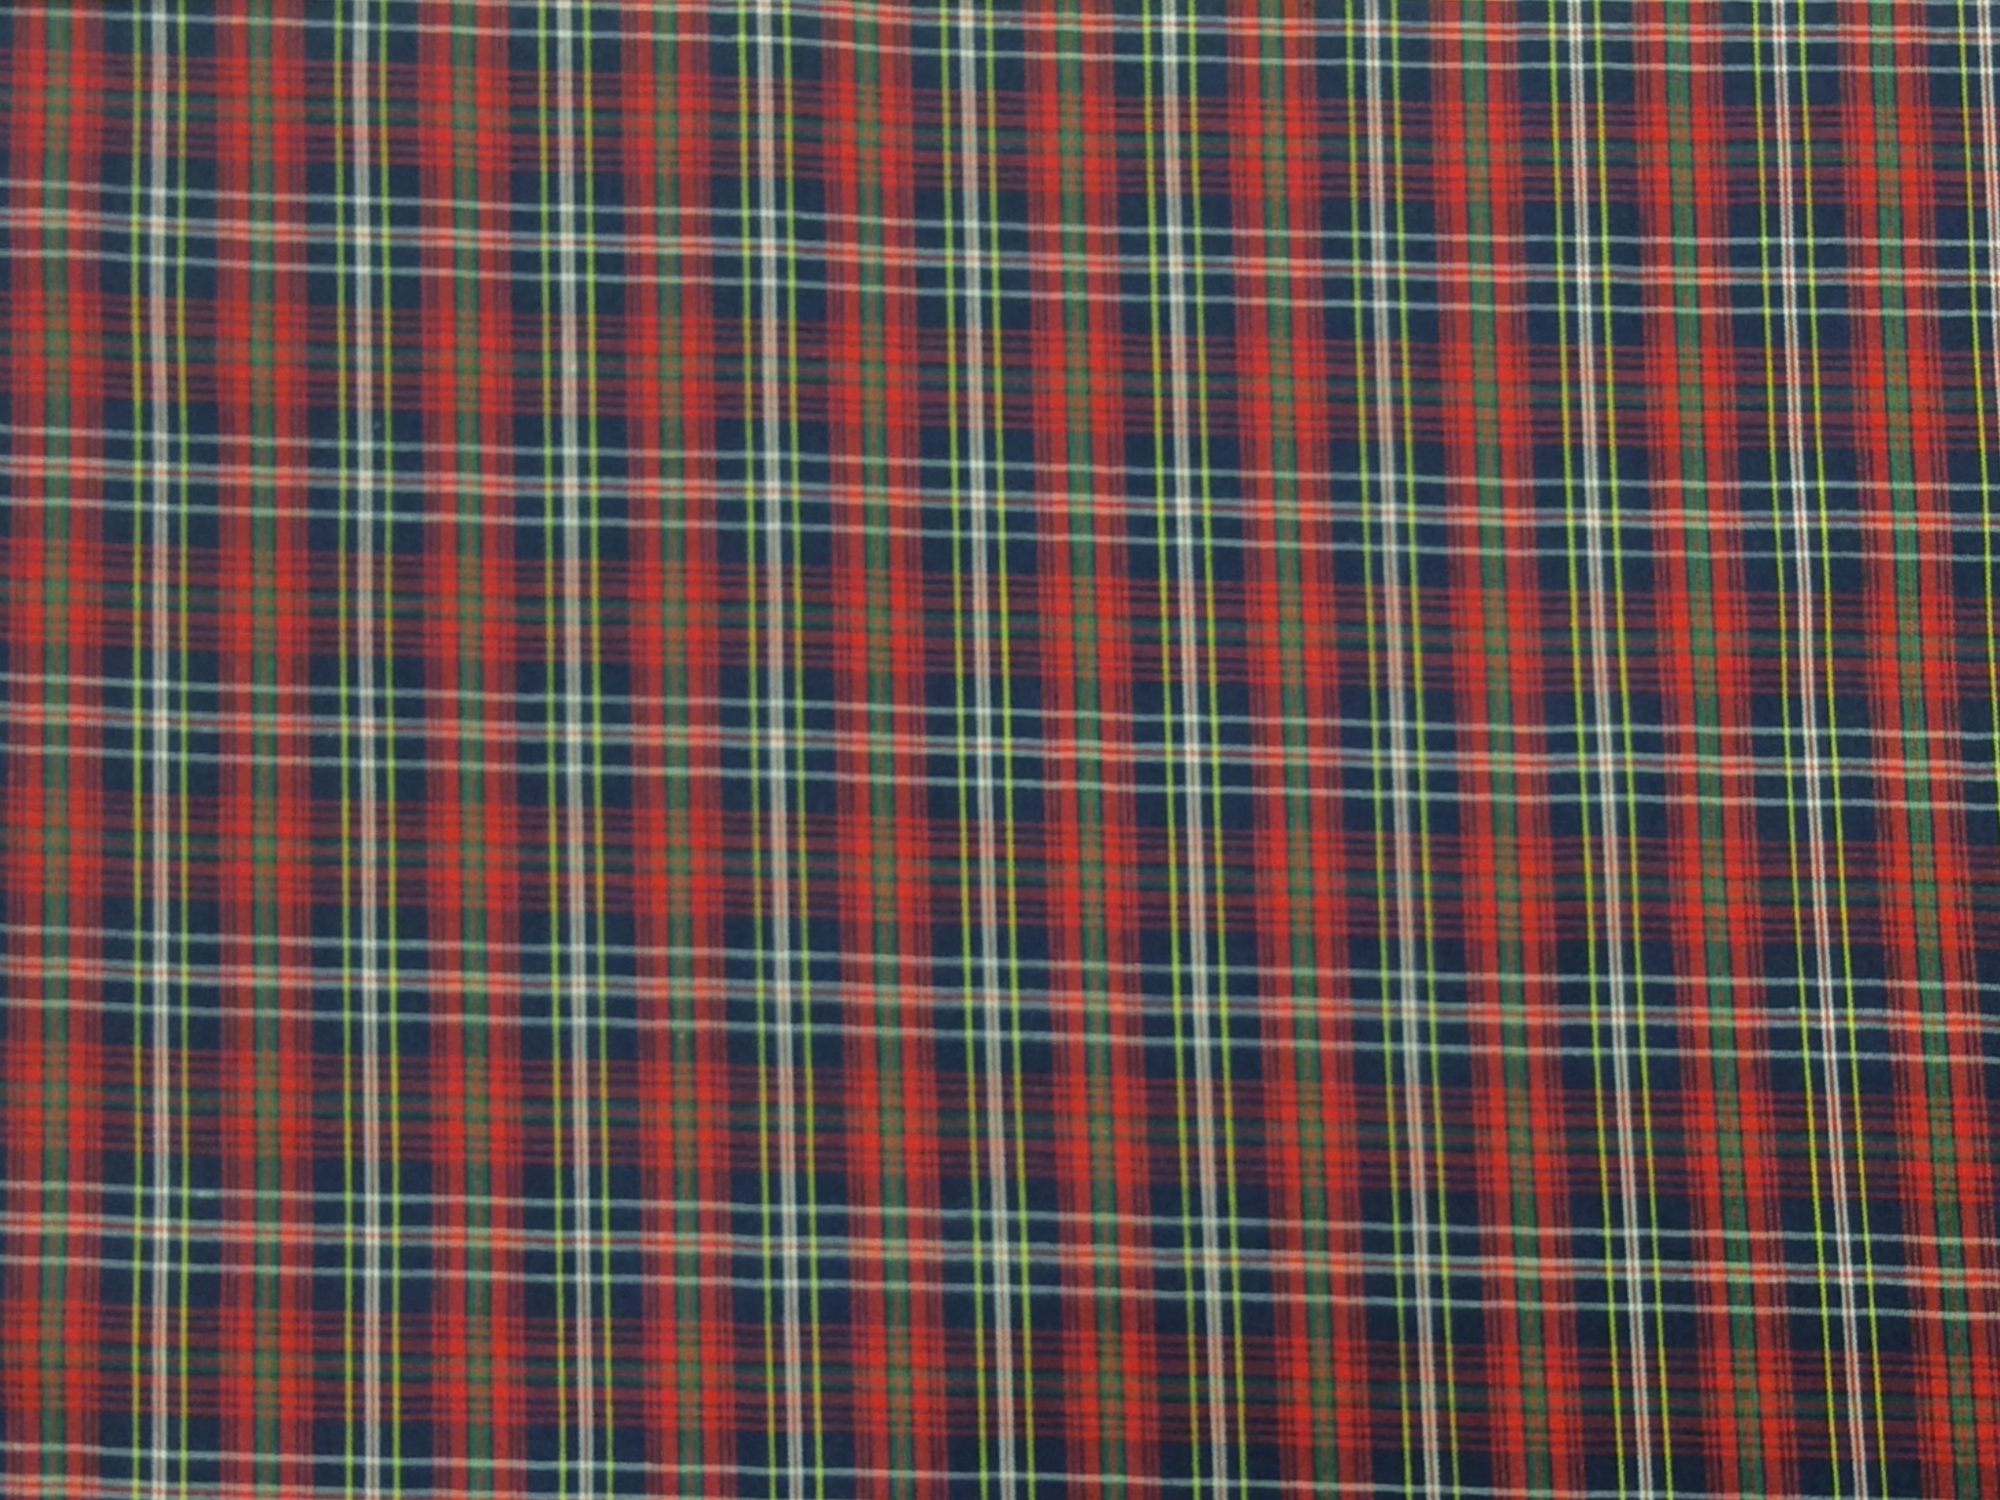 Tartan Plaid Lancelot Apparel Fabric Yarn Dyed Fabric FTP18